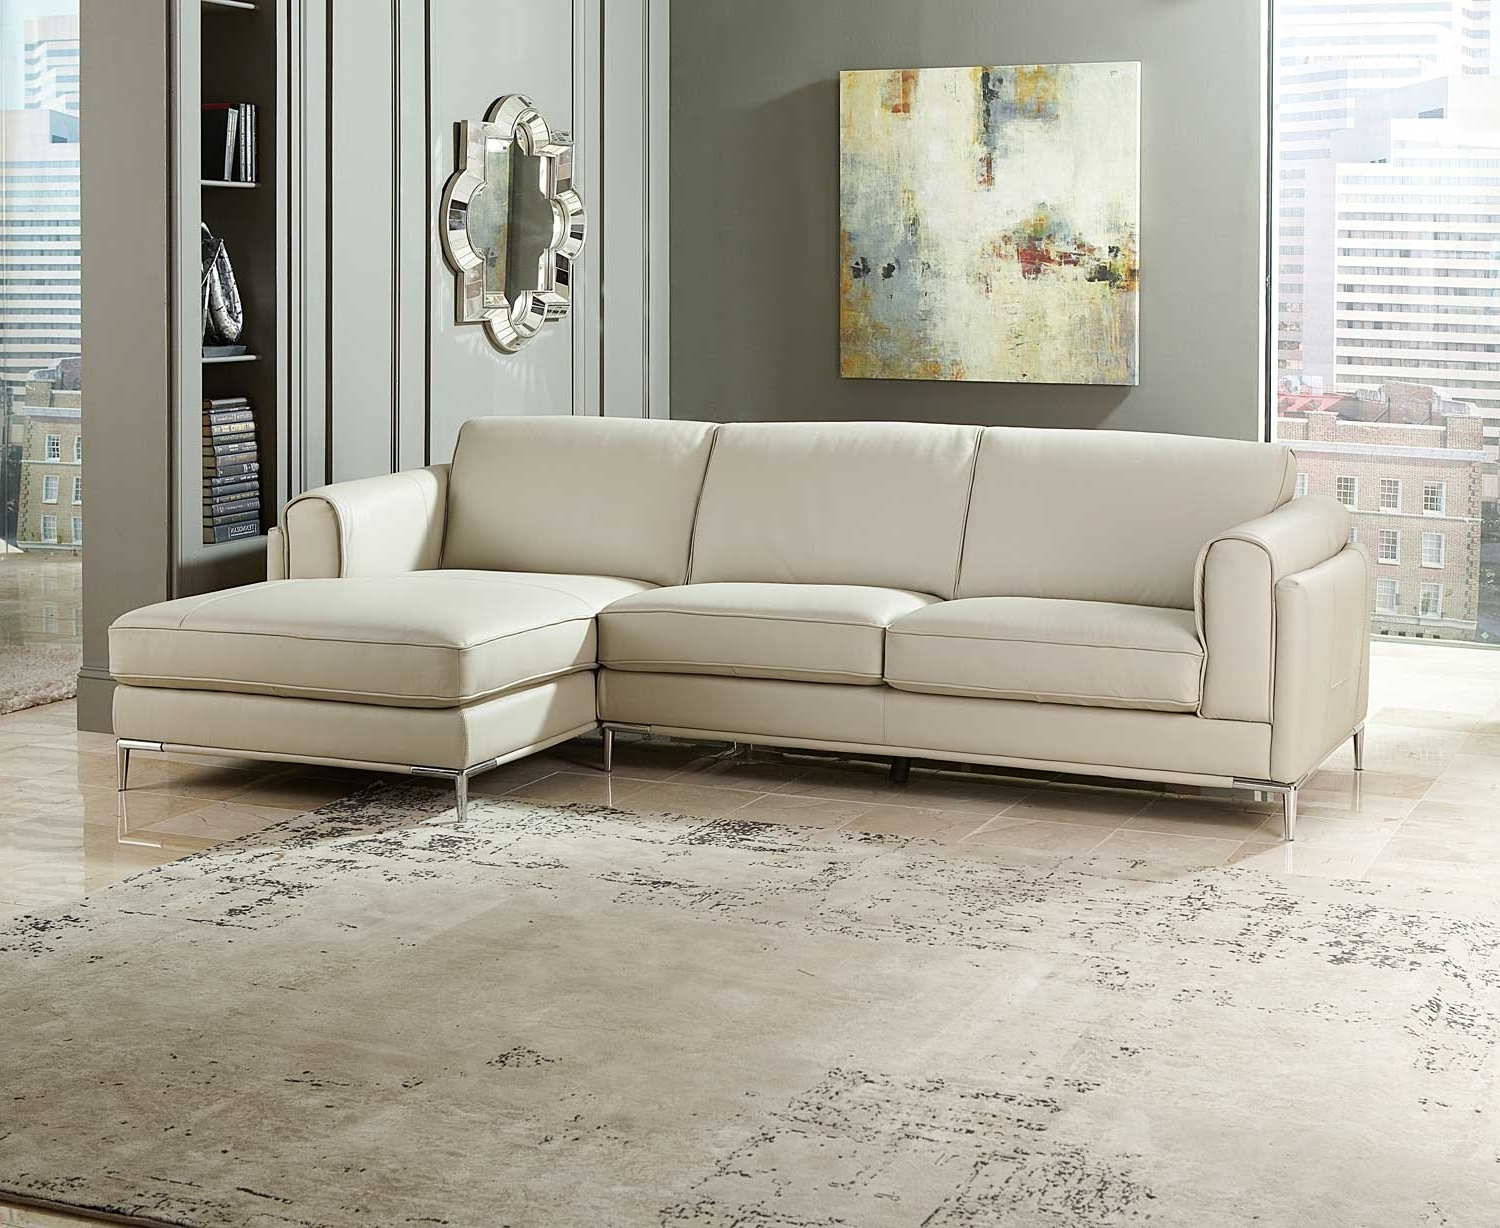 Beige Sectional Sofas With Regard To Most Recently Released Homelegance Hugo Sectional Sofa – Beige Top Grain Leather & Split (View 8 of 15)